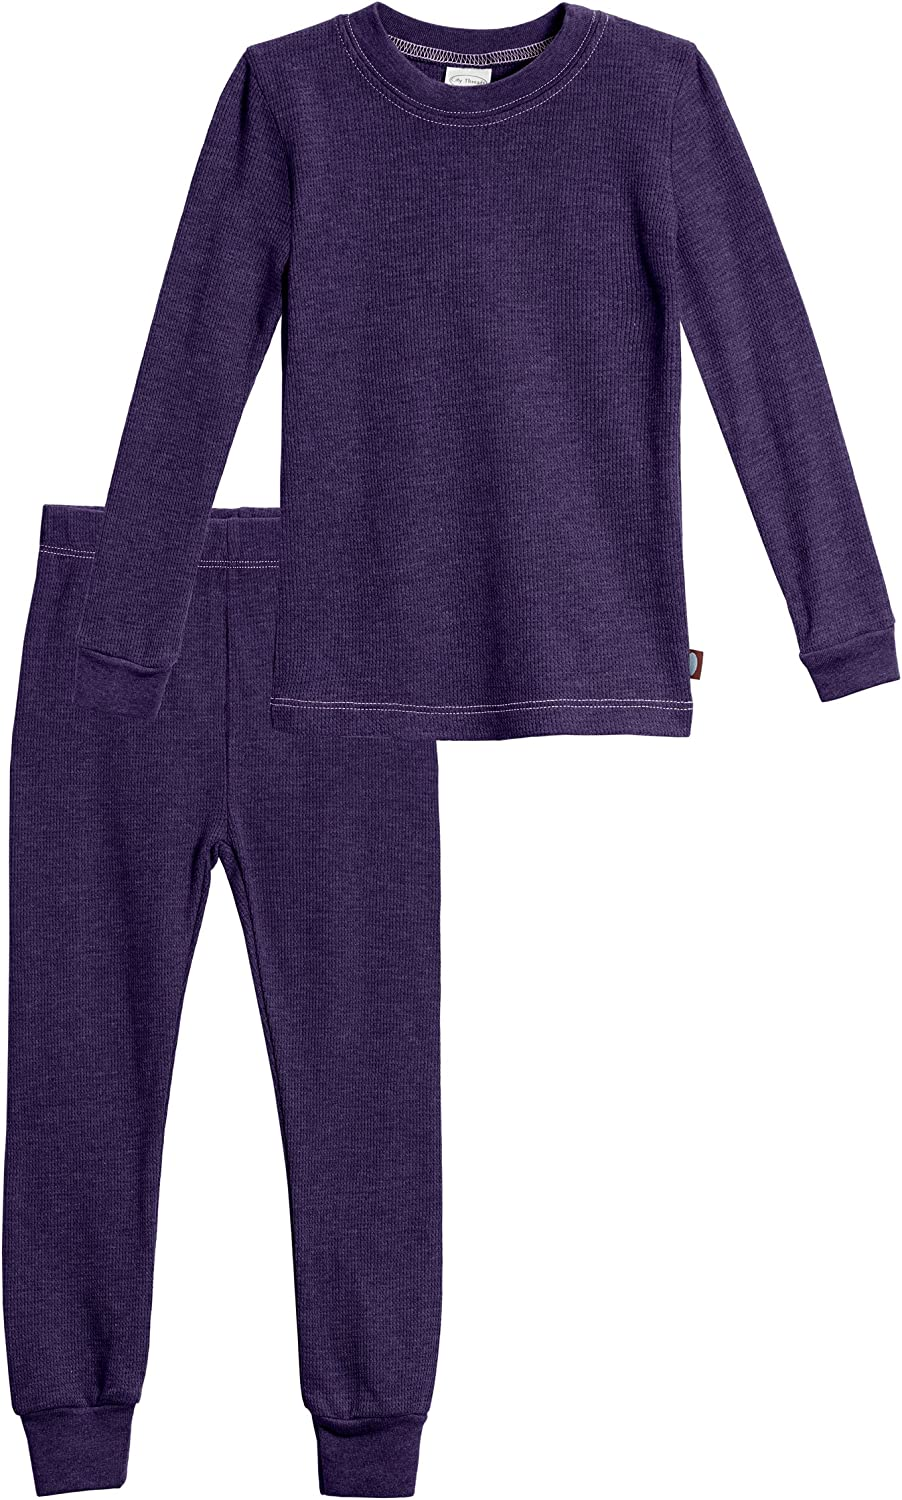 City Threads Girls Thermal Underwear Max 44% OFF Long Large-scale sale Breatha John Soft Set